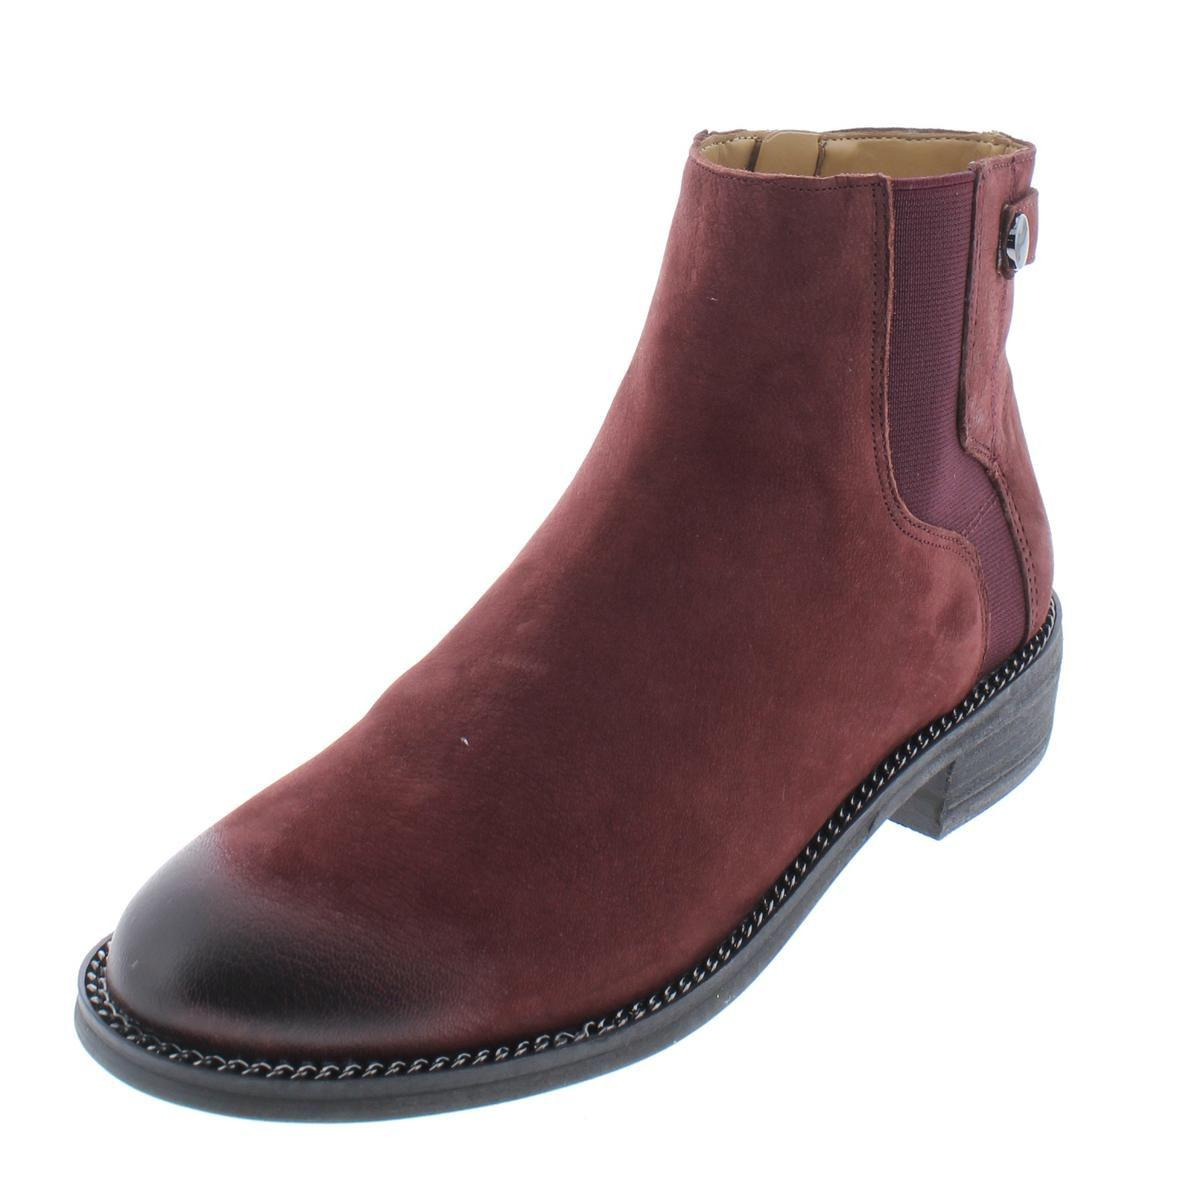 7a709f99f7e7 Lyst - Franco Sarto Womens Brandy Leather Ankle Booties